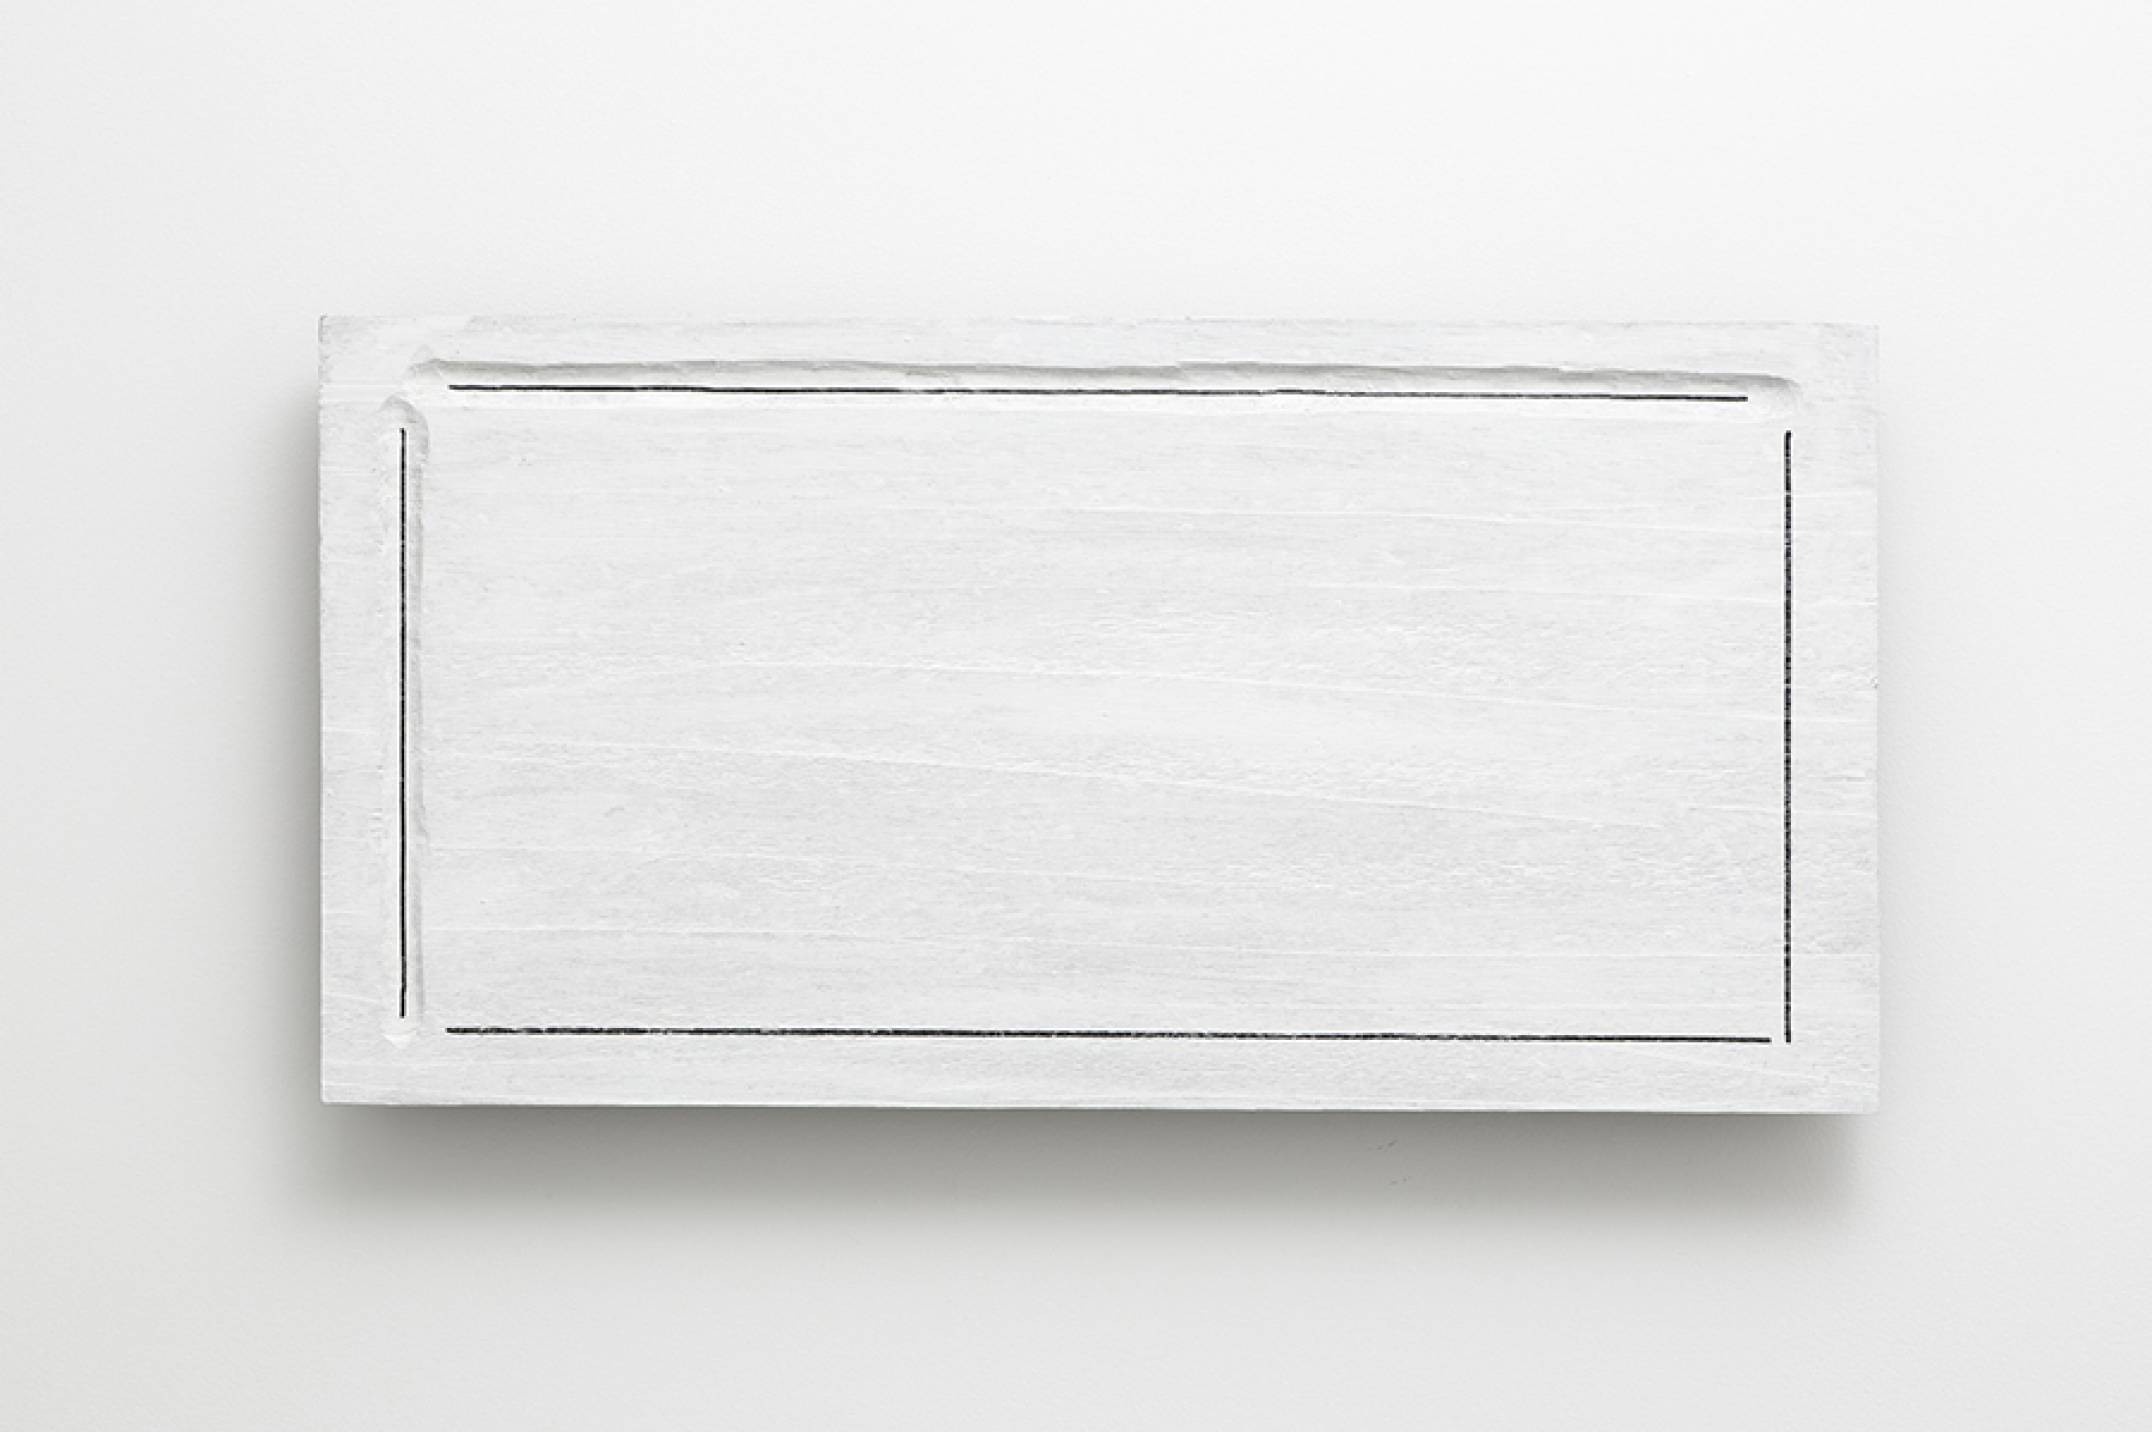 Kishio Suga,&nbsp;<em>Enclosed Condition</em>, 1977,&nbsp;wood, paint, marker pen, varnish, 35,6 × 69,9 × 5,4 cm - Mendes Wood DM